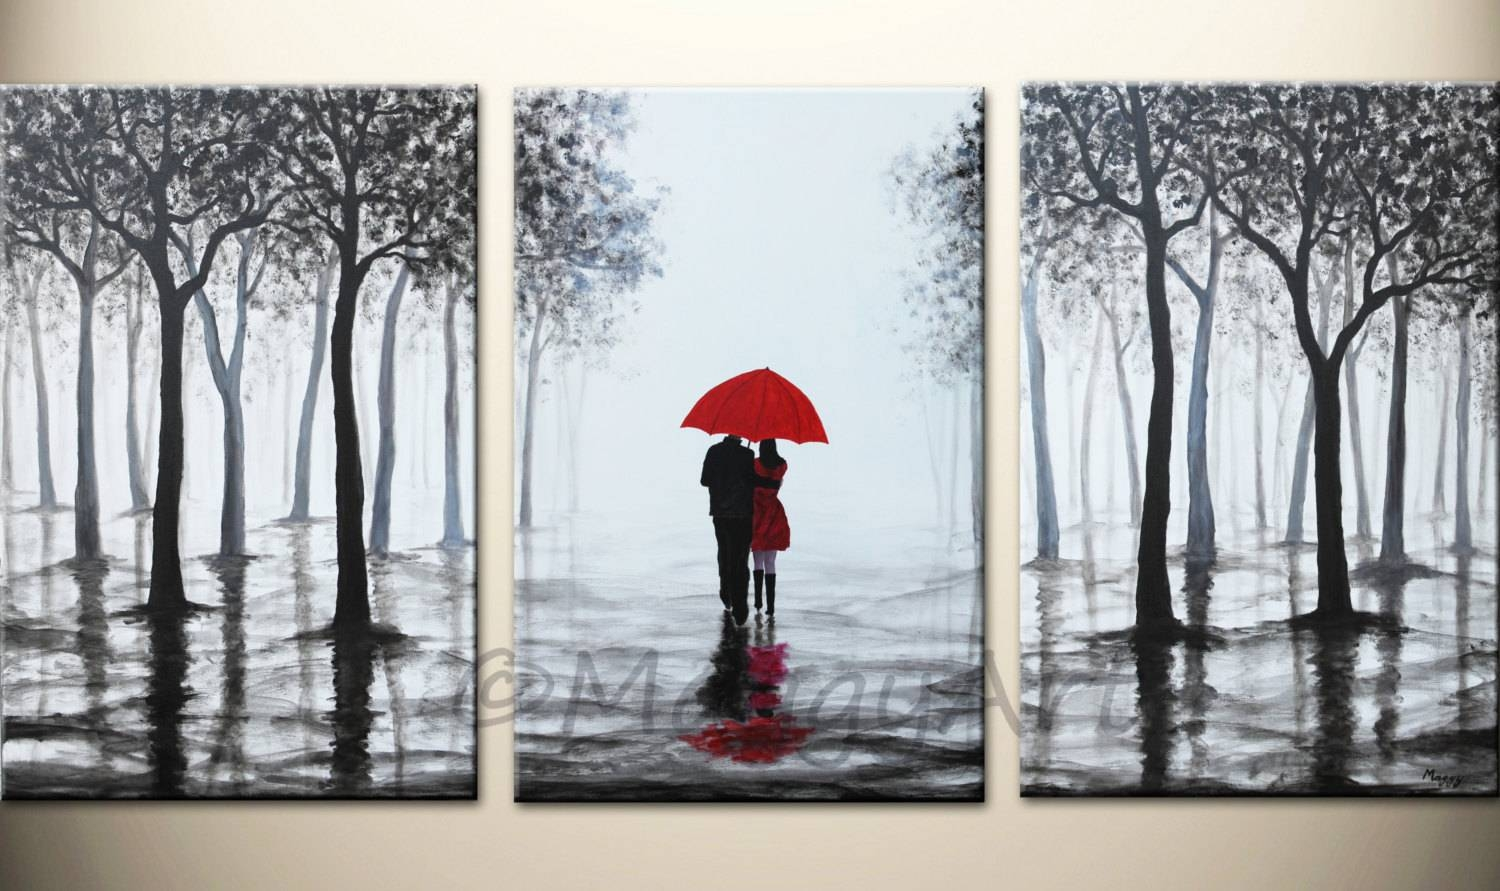 Original Acrylic Painting72X36 Inch Walking In Rain Black Within Recent Black White And Red Wall Art (Gallery 10 of 20)